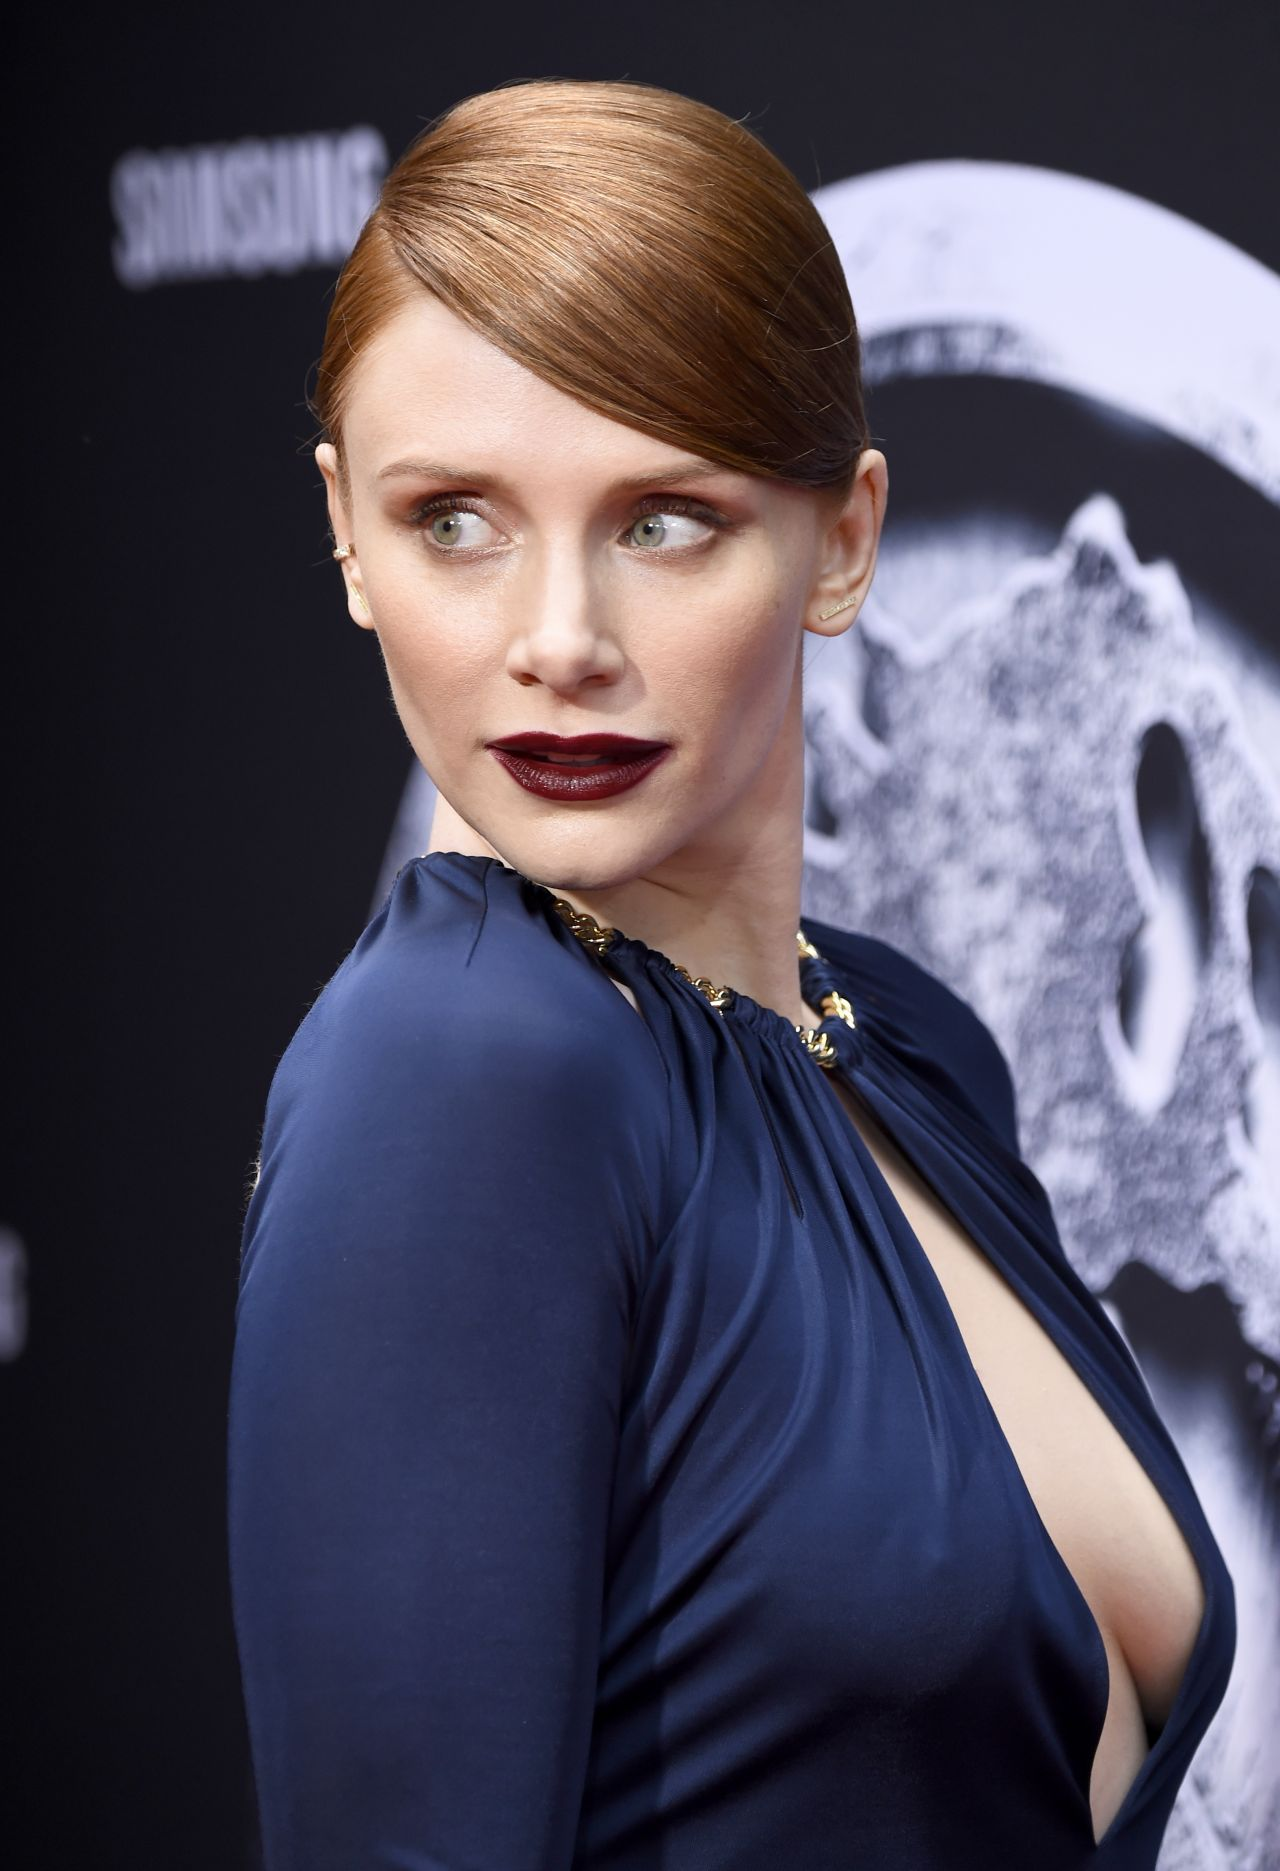 Bryce Dallas Howard at the premiere of Jurassic World Review